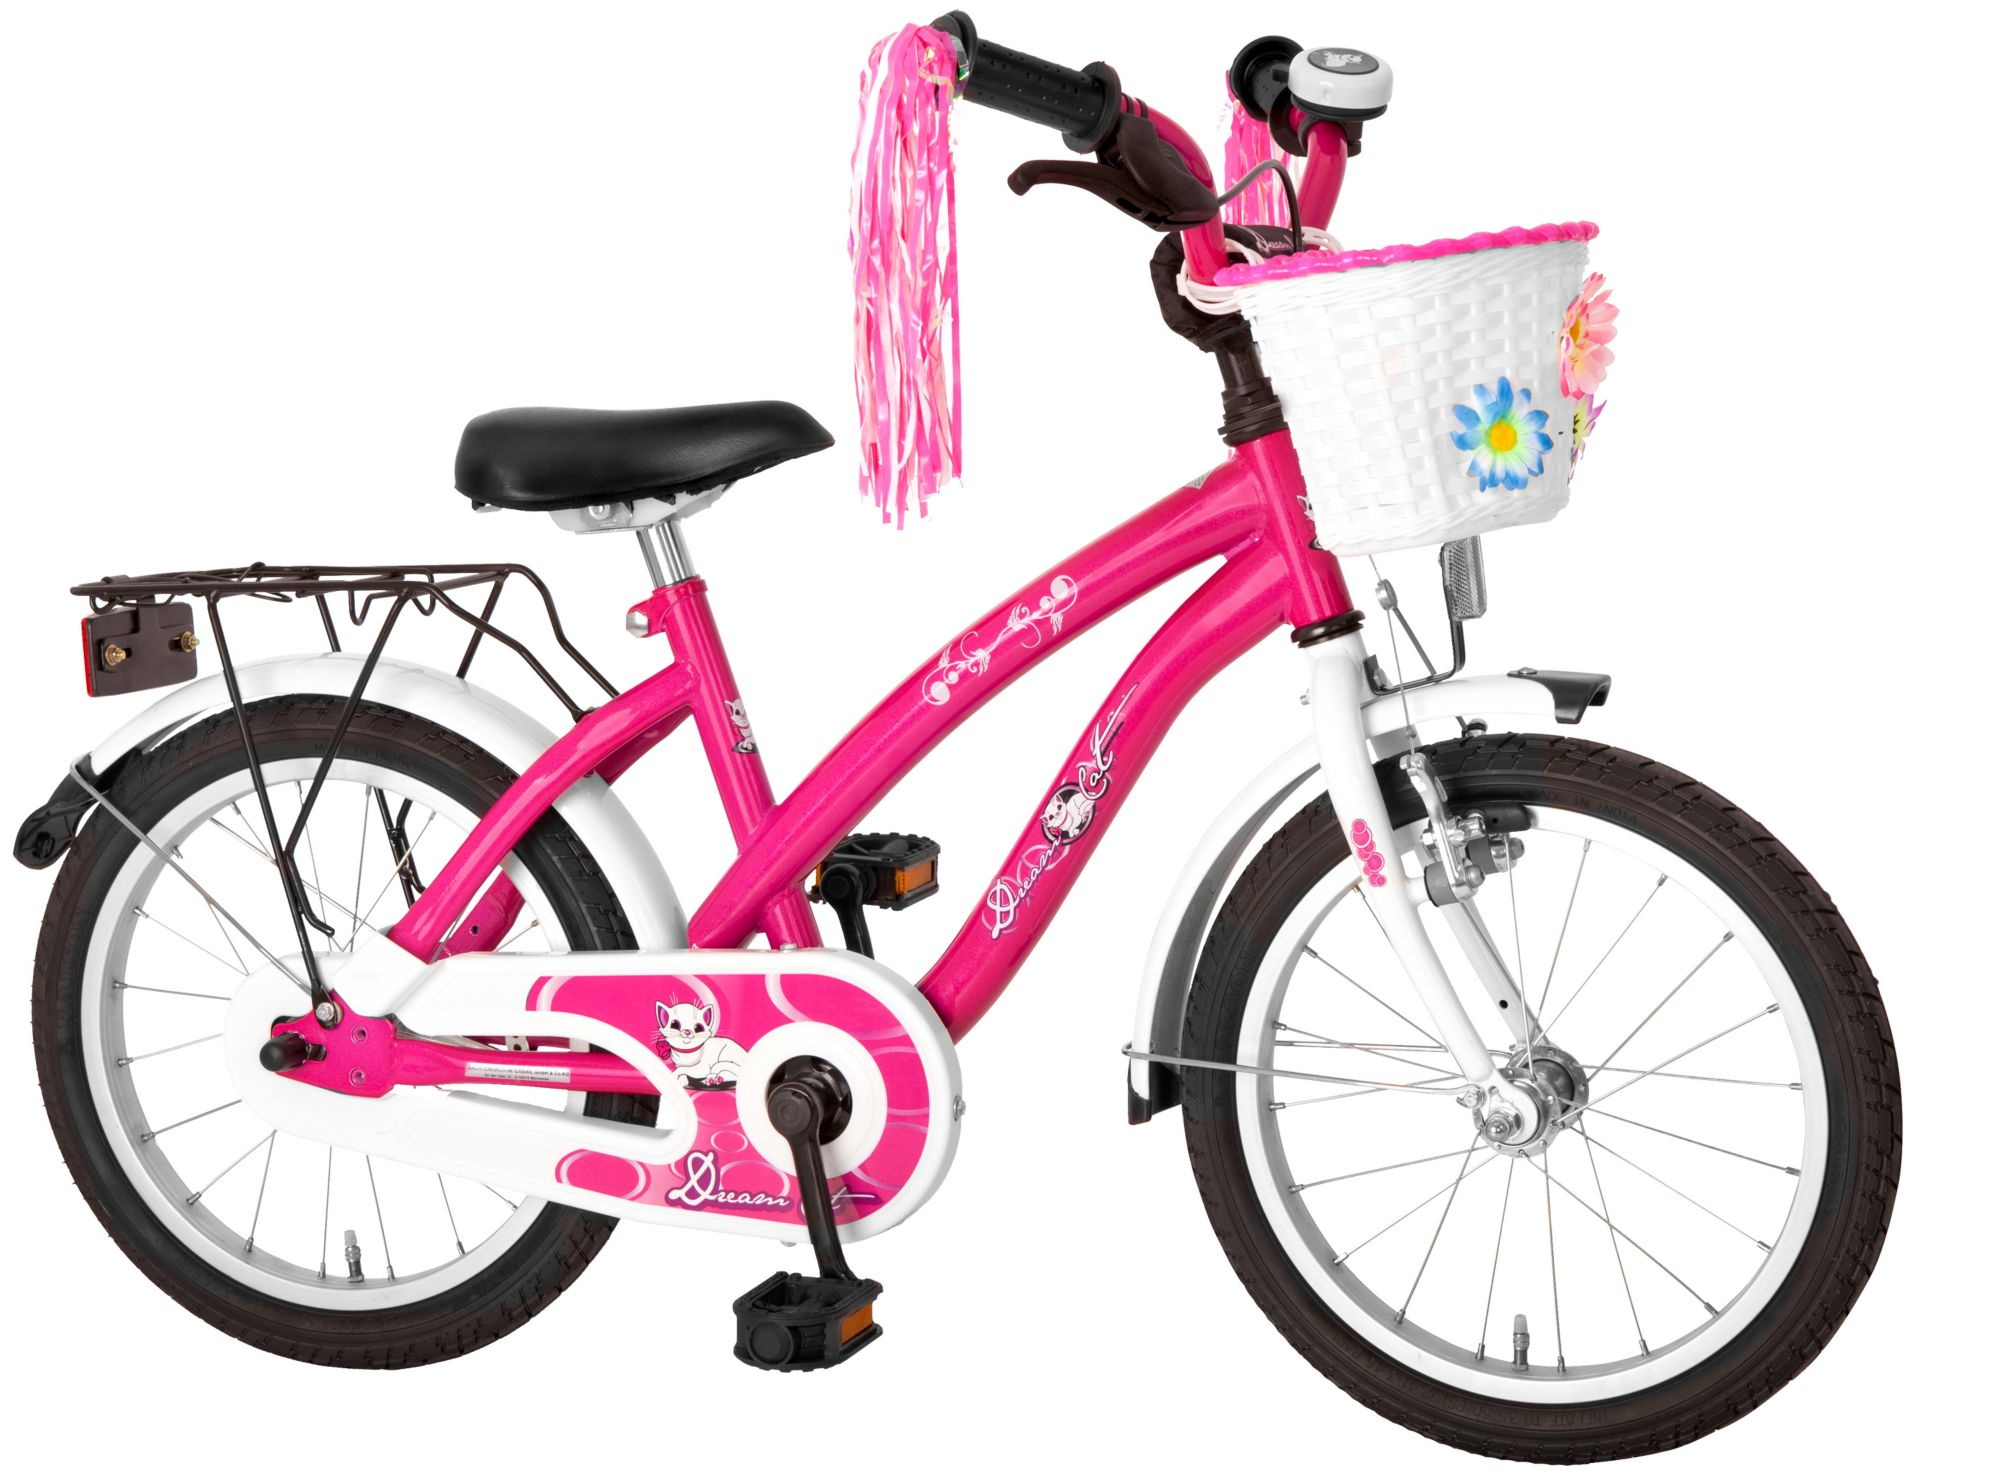 CYCLES4KIDS Cycles4Kids Kinderfahrrad »Dream Cat, 31,75 cm (12,5 Zoll) bis 45,72 cm (18 Zoll)«